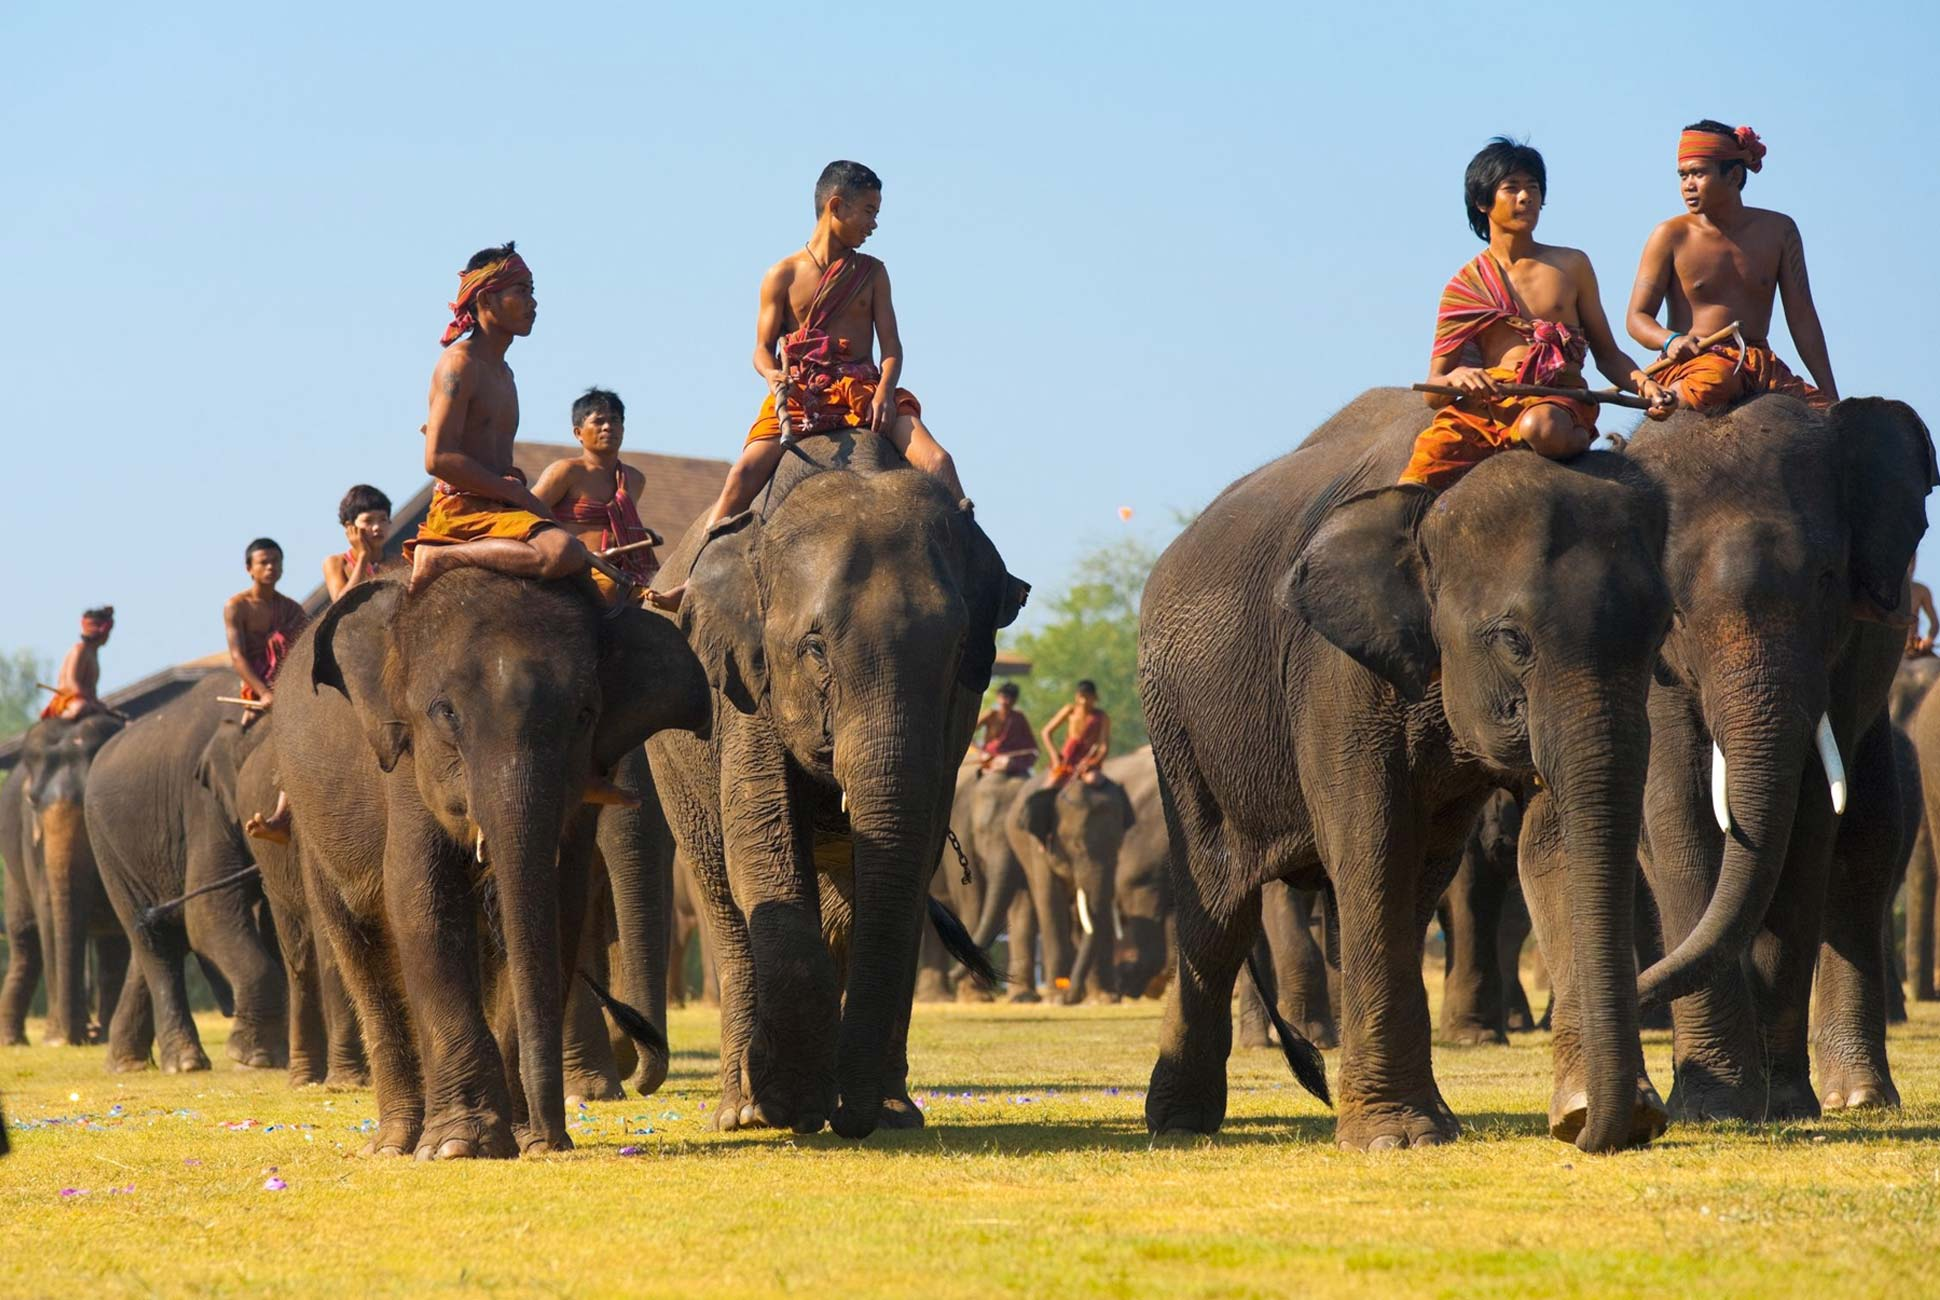 Surin Elephant Festival - What to Expect for Winter in Thailand